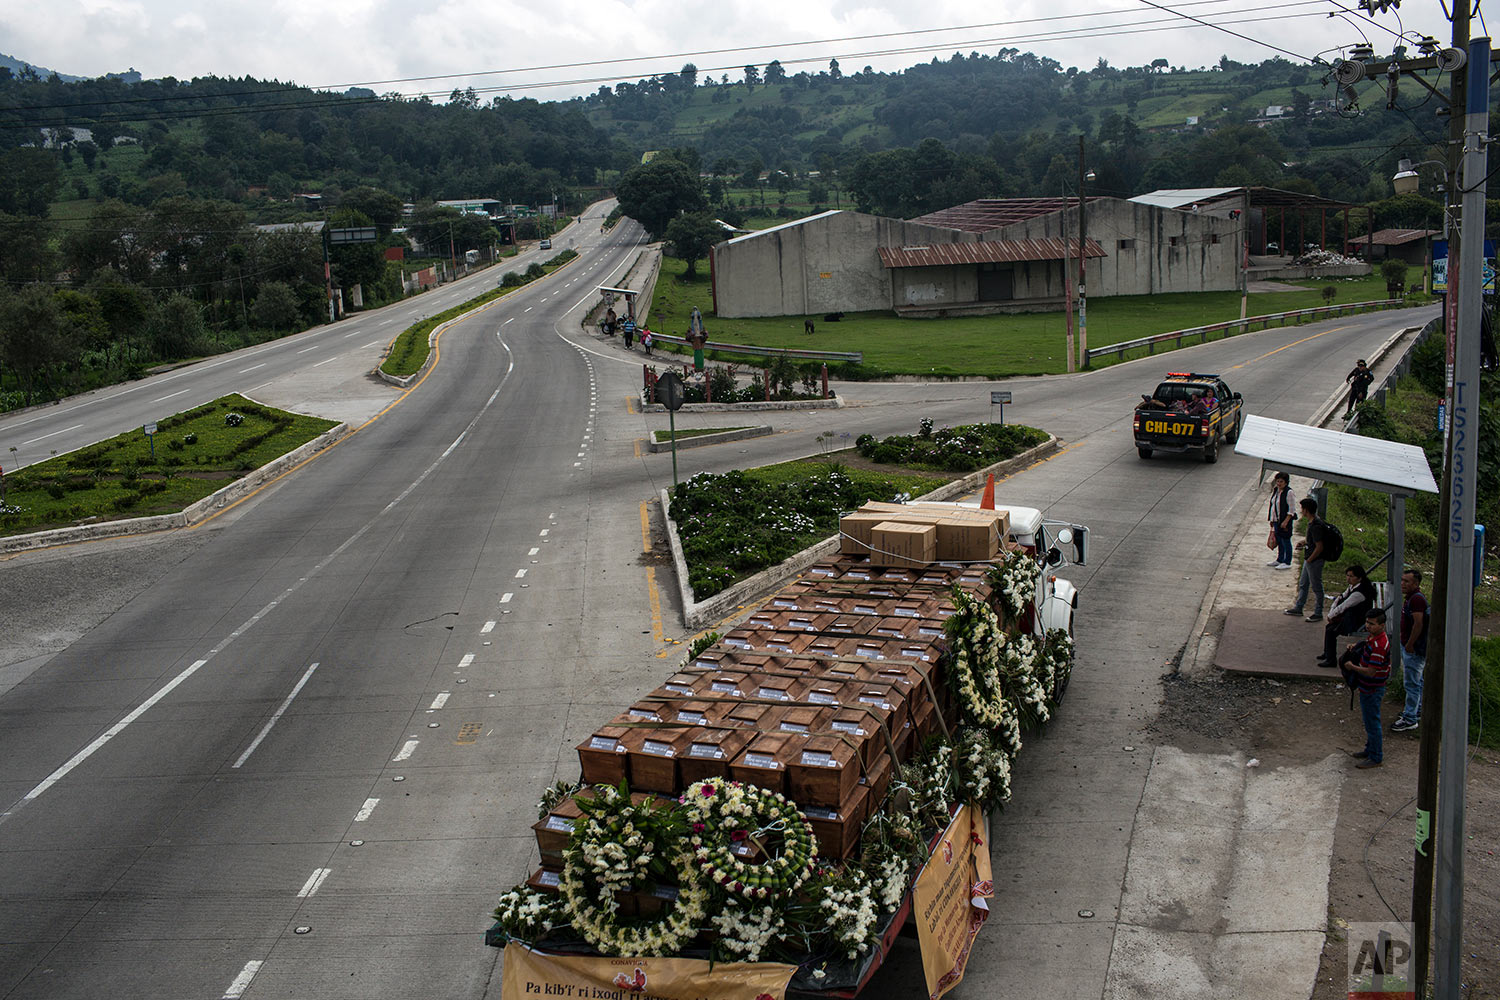 The remains of the 172 unidentified people are returned to San Juan Comalapa, Guatemala for a proper burial at the former military camp where they were discovered in a mass grave. June 20, 2018. (AP Photo/Rodrigo Abd)